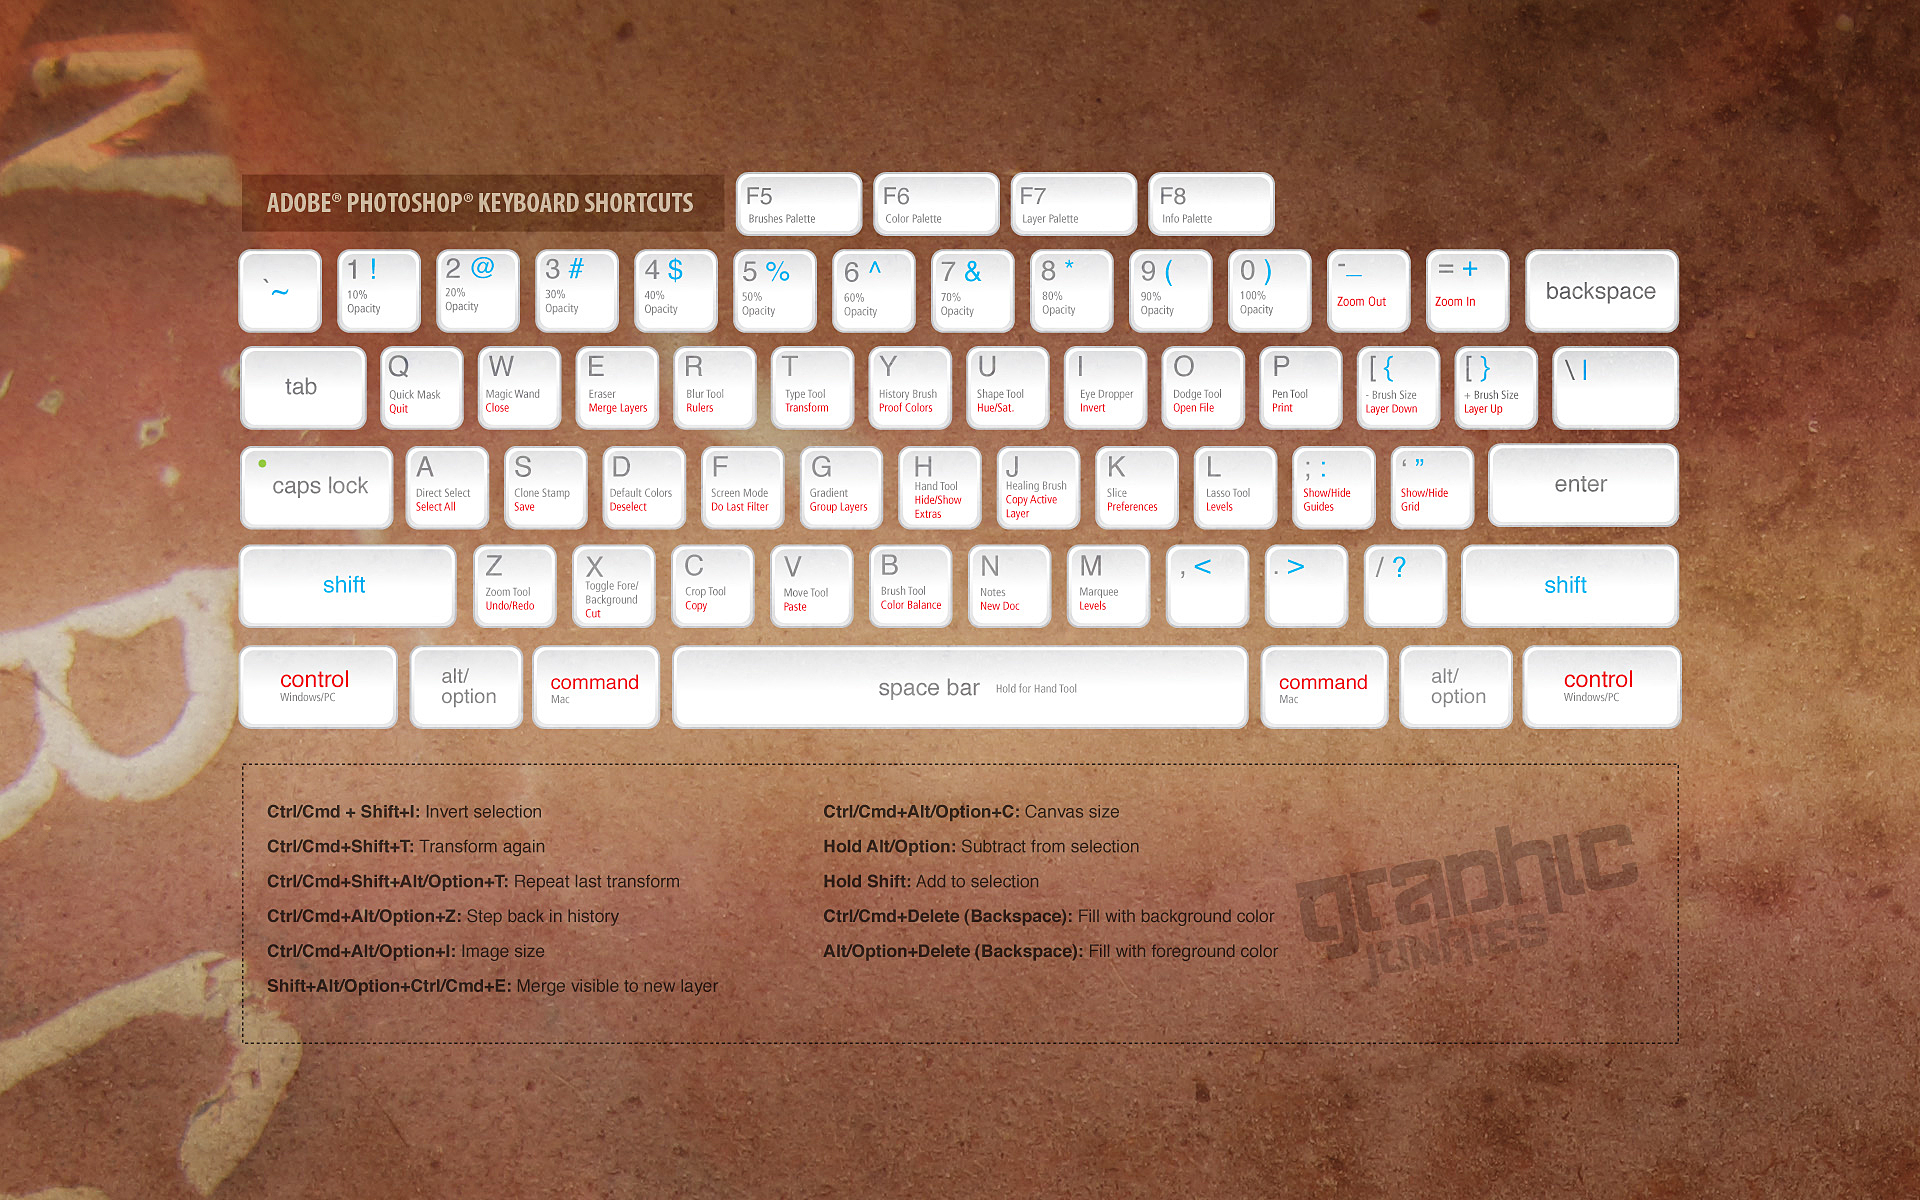 medium resolution of abode photoshop keyboard shortcuts keys diagram detailed poster canvas diy wall sticker home bar posters decoration gift